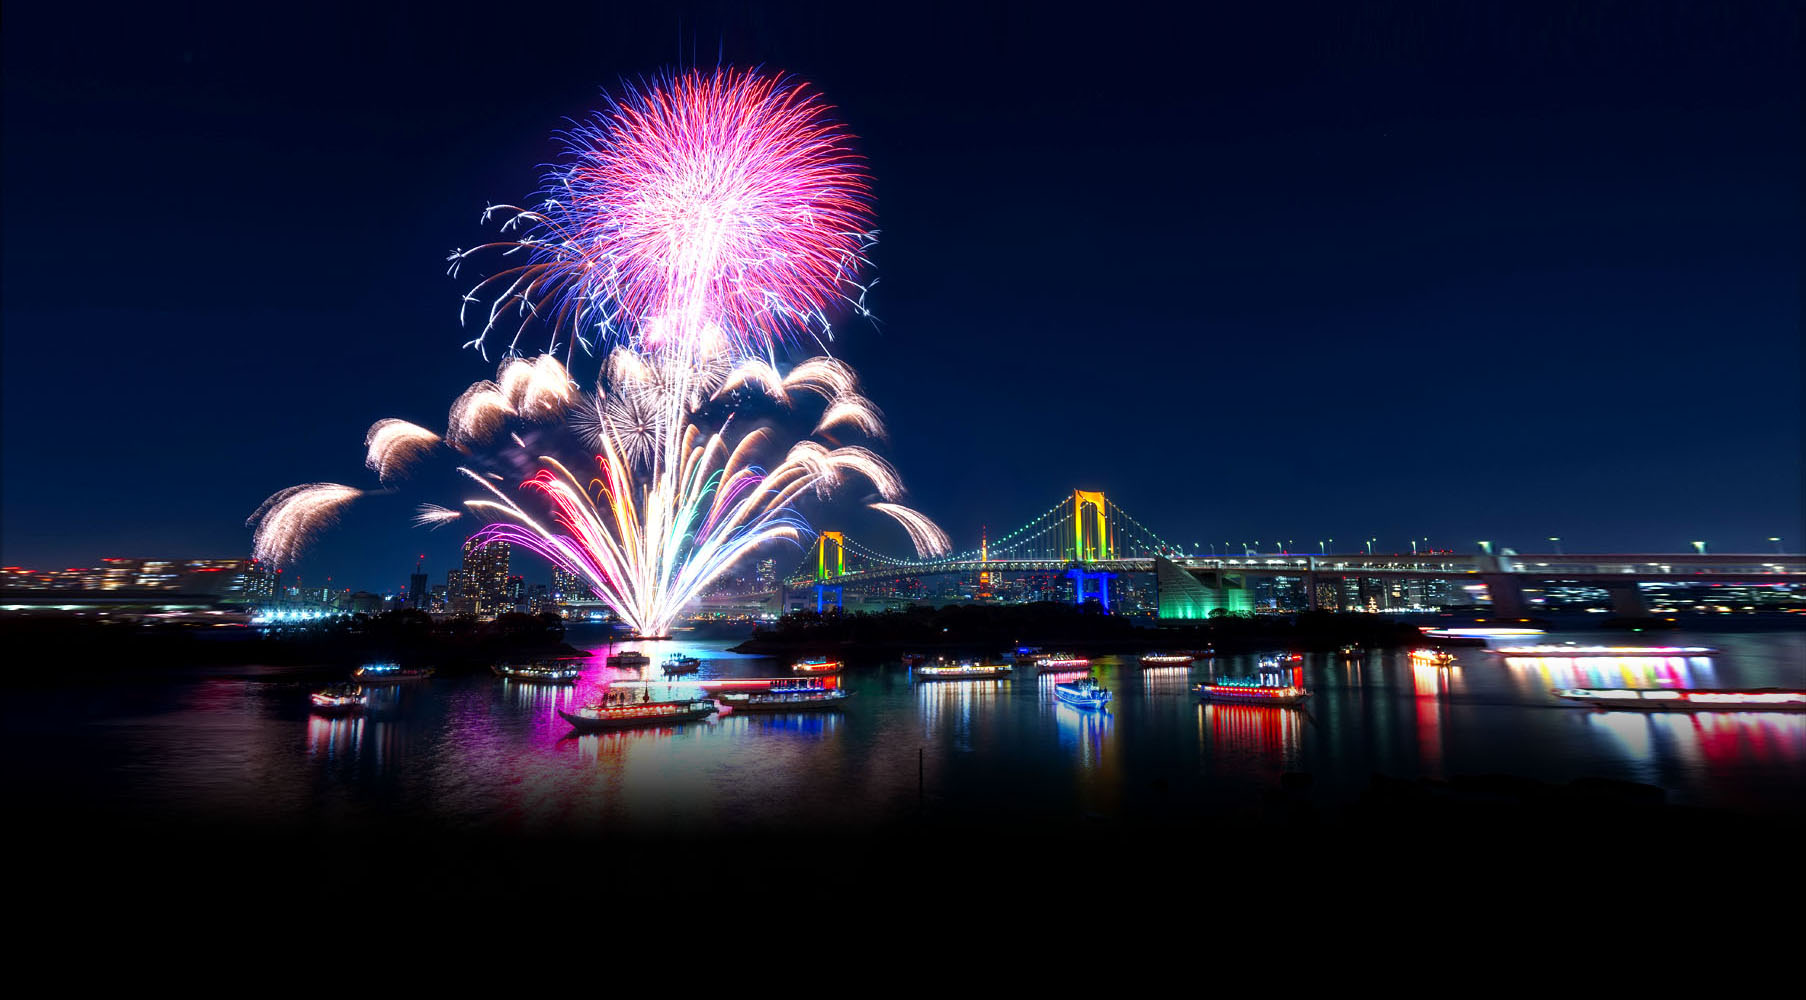 chinese firework industry essay Chinese fireworks industry is a highly competitive industry, however, it still presents opportunities for investors based on the analysis of liuyang fireworks industry, the suggestion for jerry yu is to take the opportunities-to invest in liuyang fireworks industry.